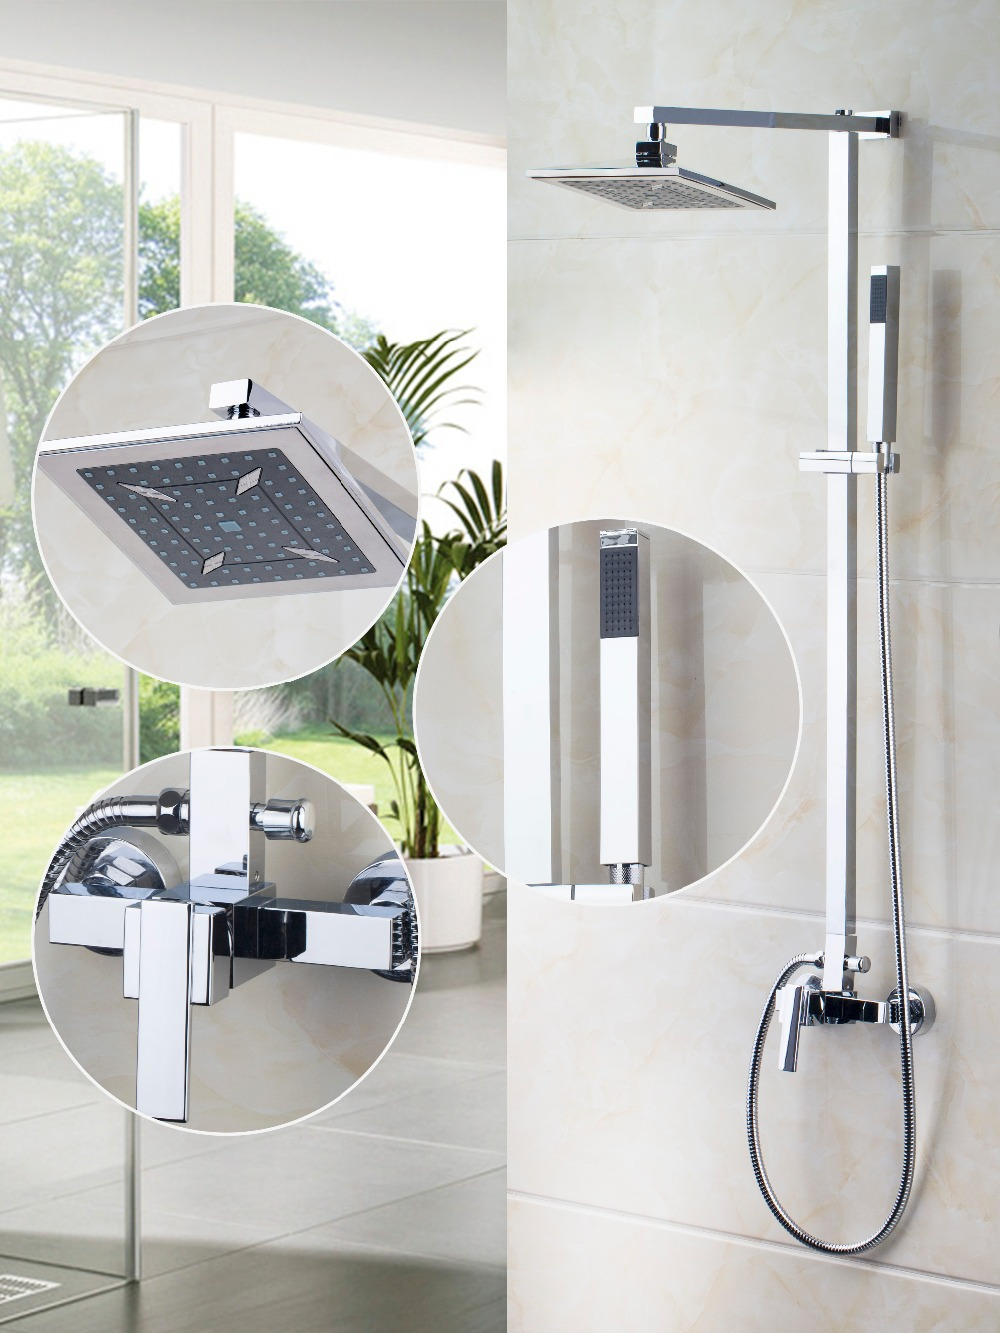 Compare Prices on Square Bath Taps- Online Shopping/Buy Low Price ...